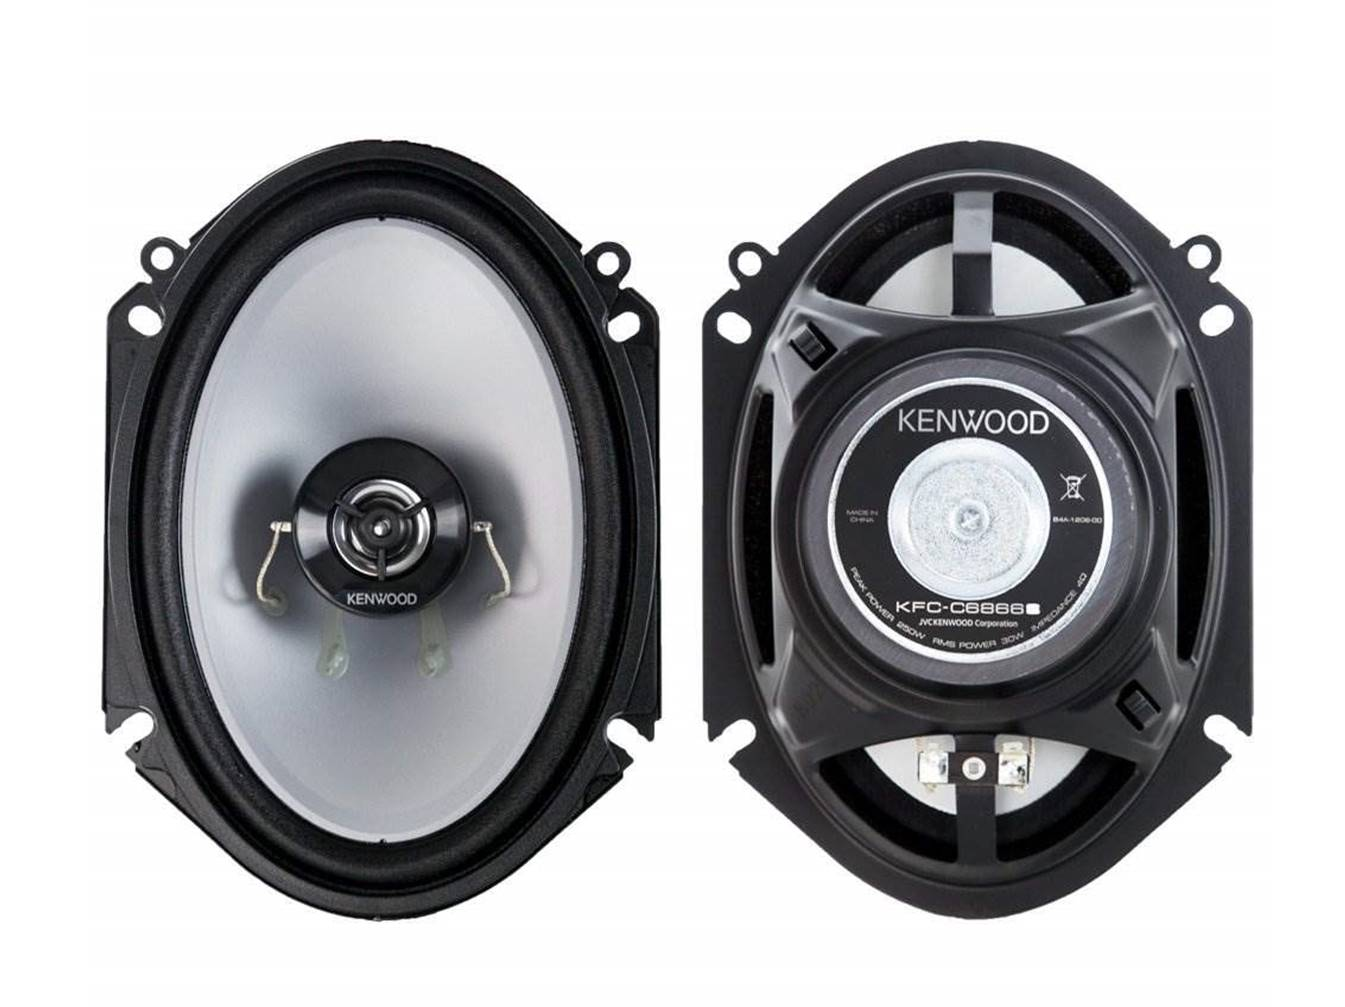 Kenwood KFC-C6866S Loudest Car Speakers